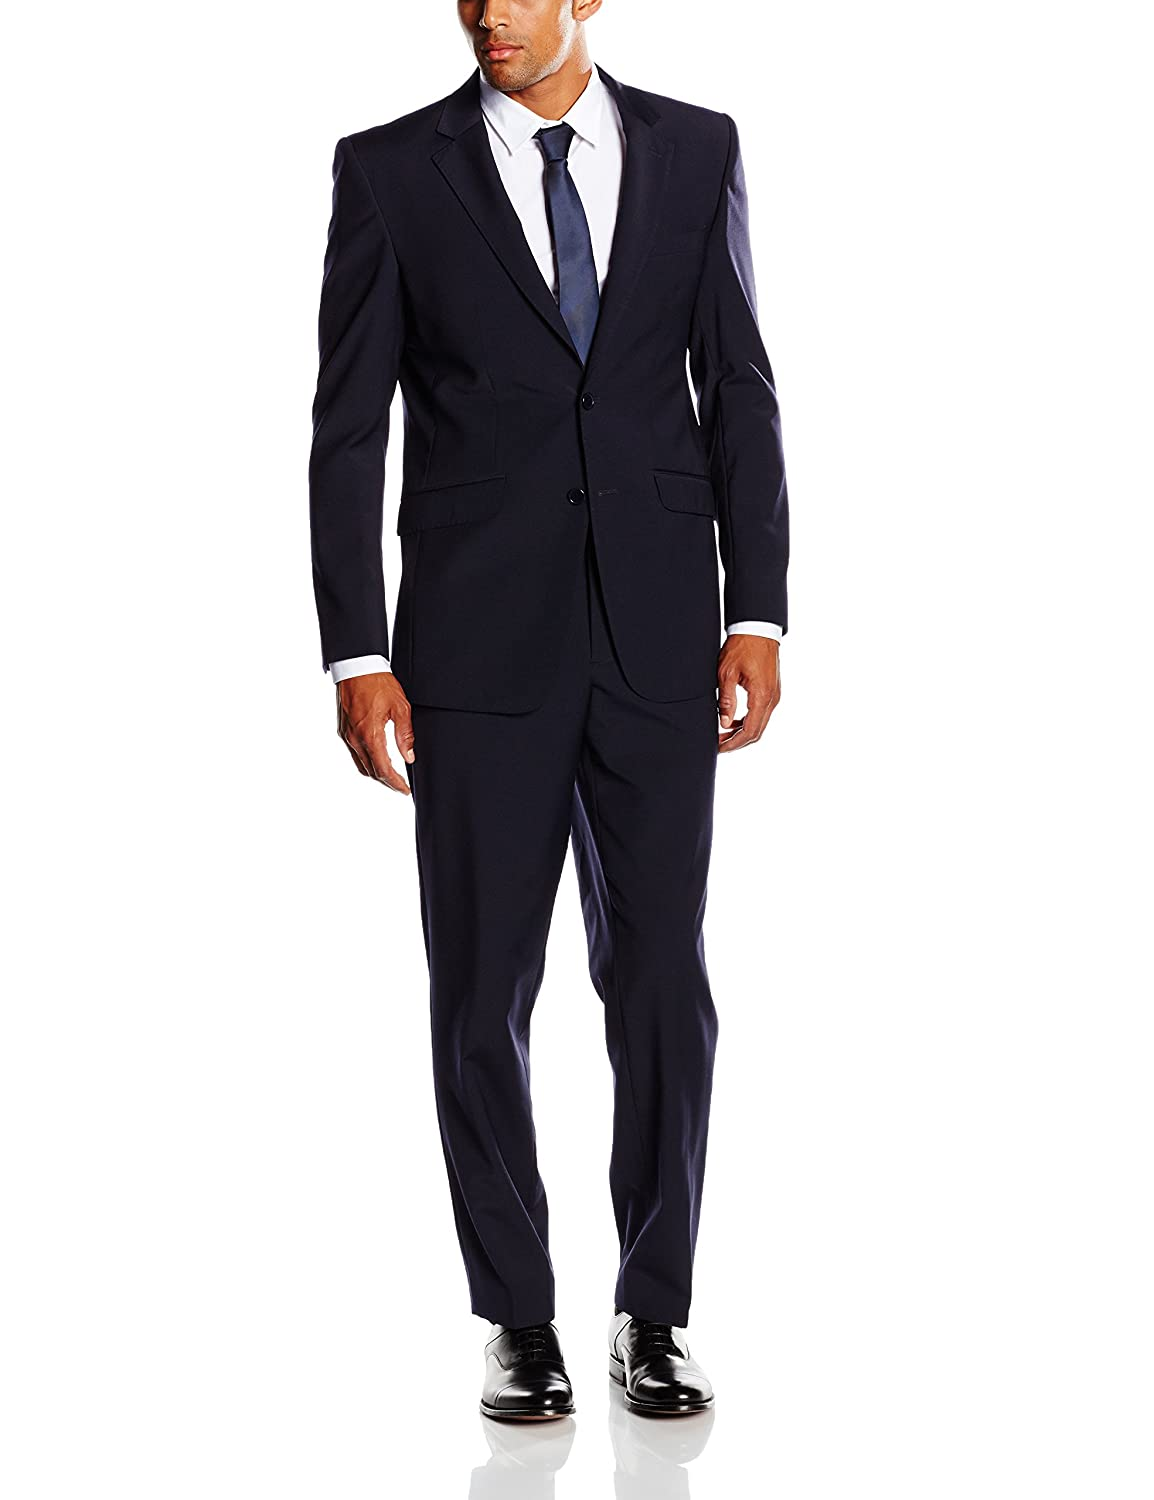 BlueBlack Men's Belluno Suit Petermann Hemdenfabrik GmbH 750 69-744001L